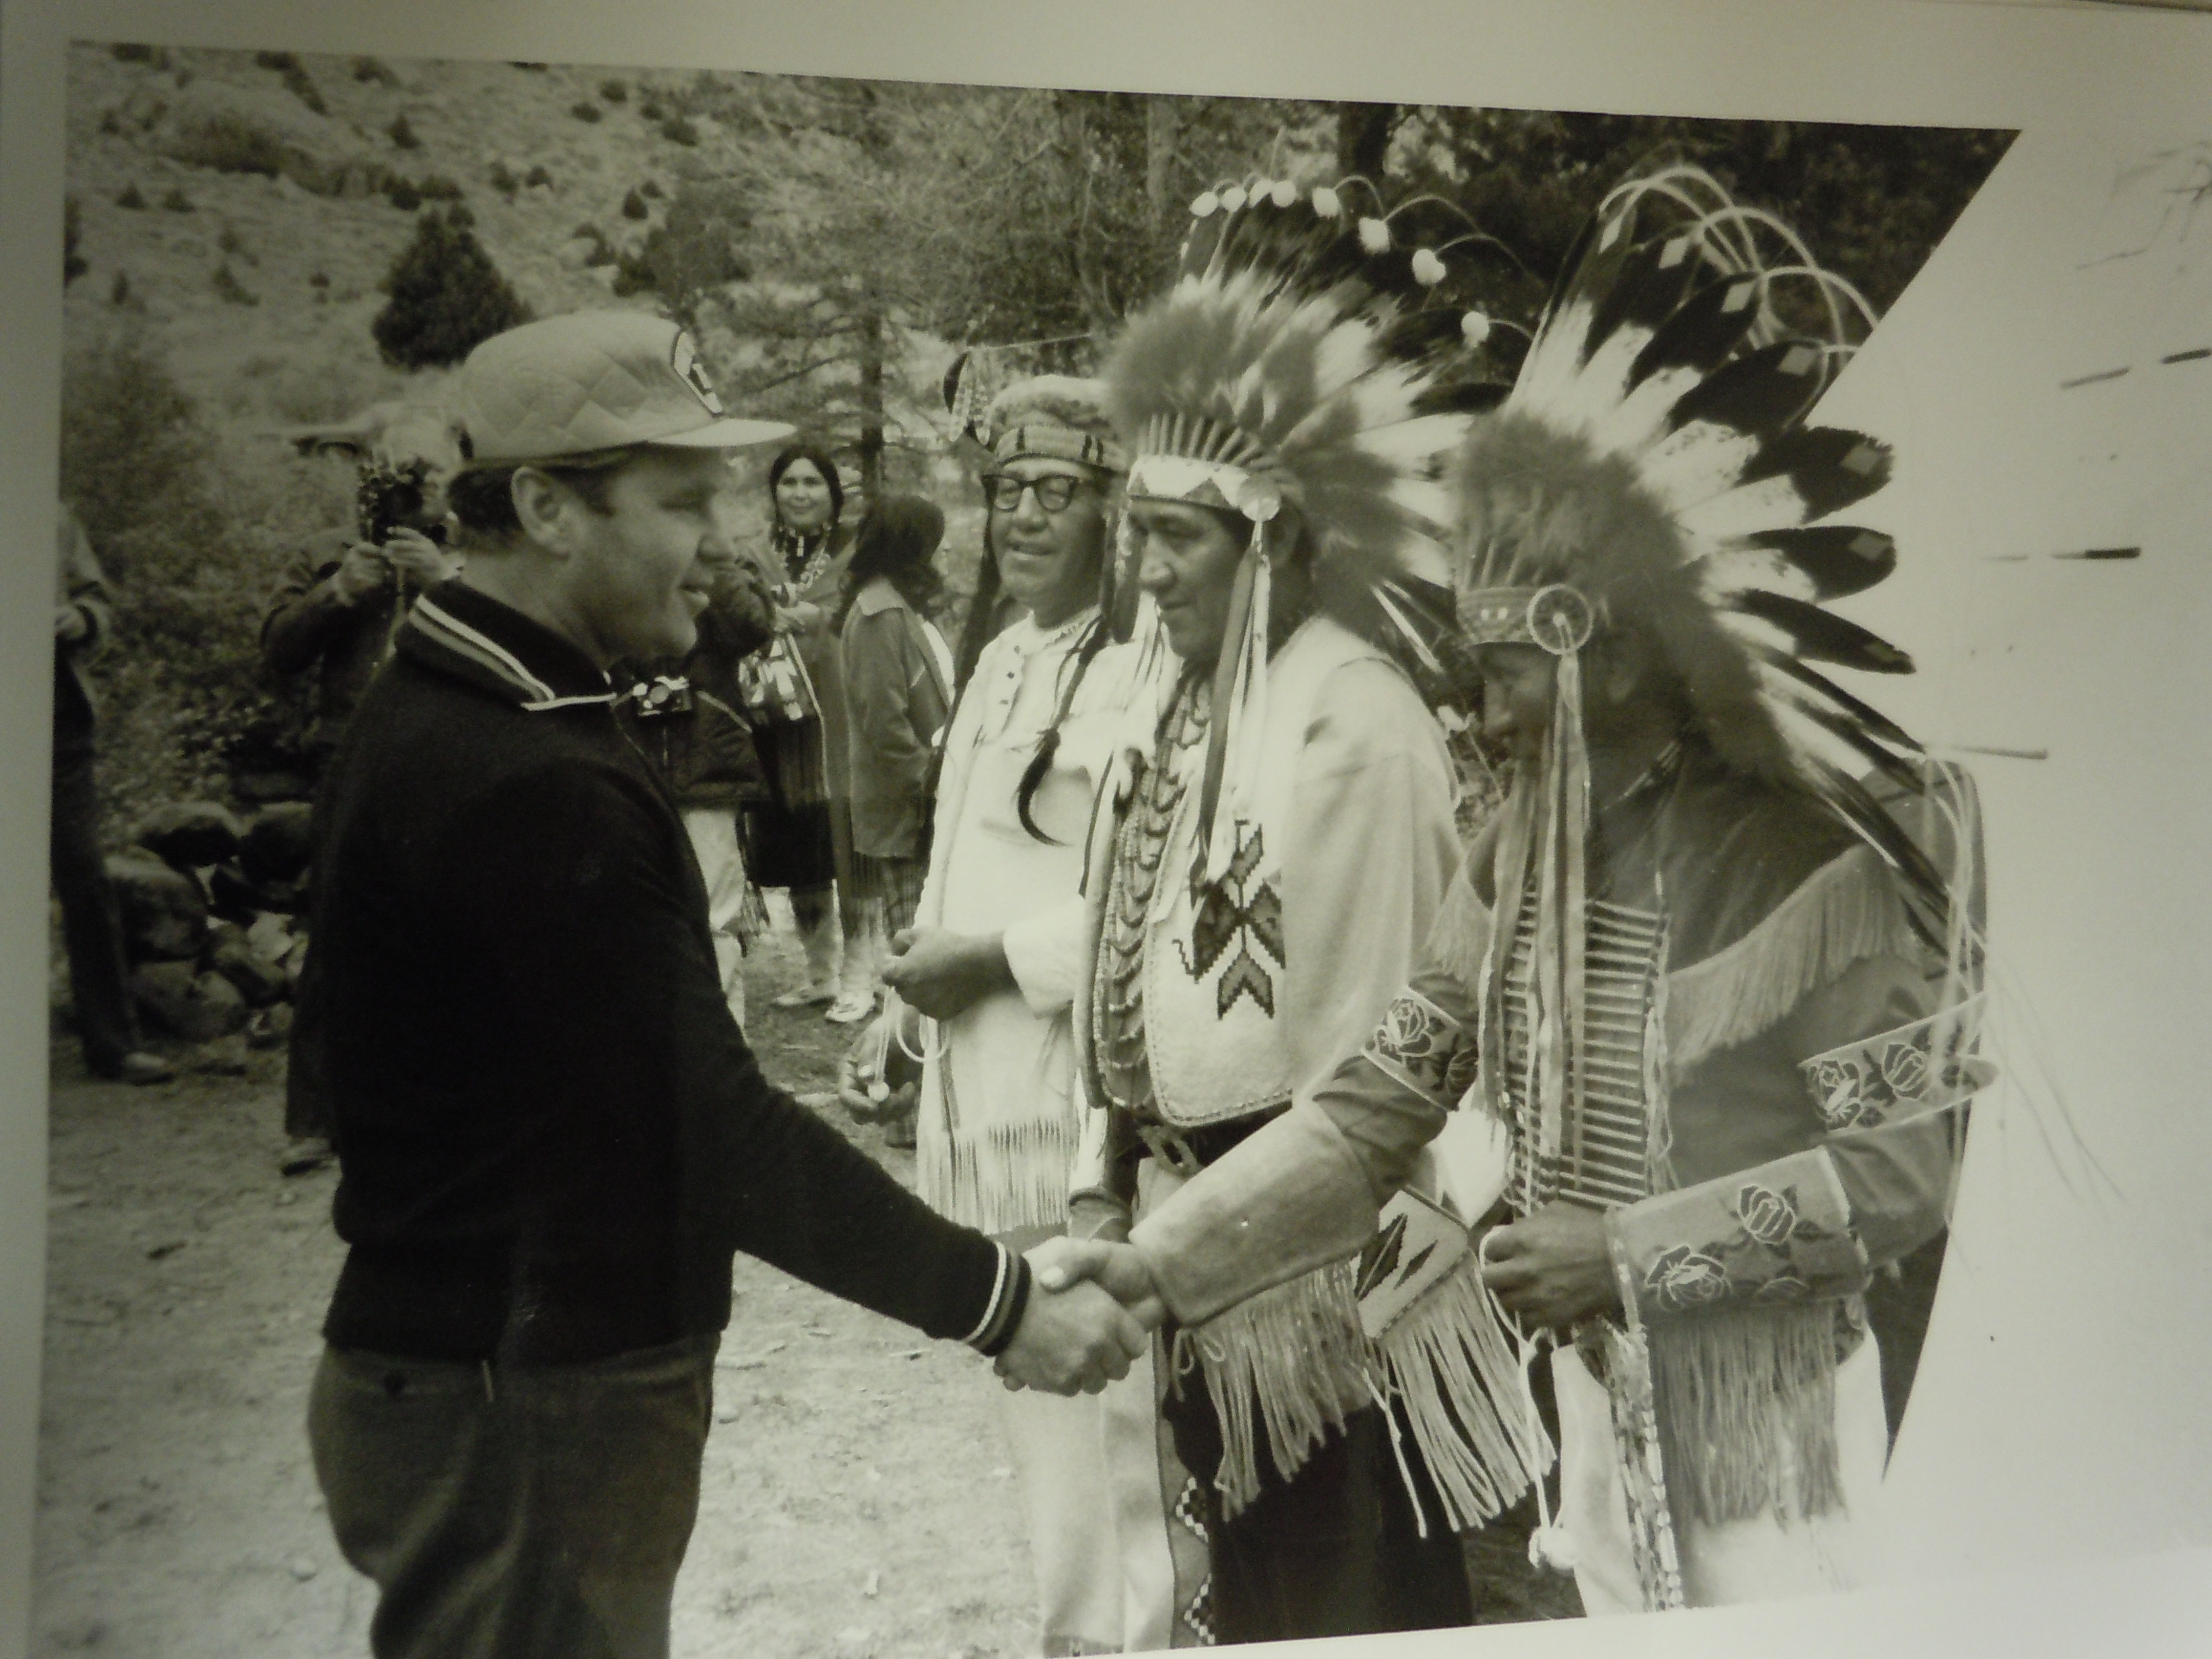 The Soviet cosmonaut and head of Cosmonaut training, Vladimir Shatalov (1927-), greeting Shoshone tribal leaders in Wyoming in September 1974.